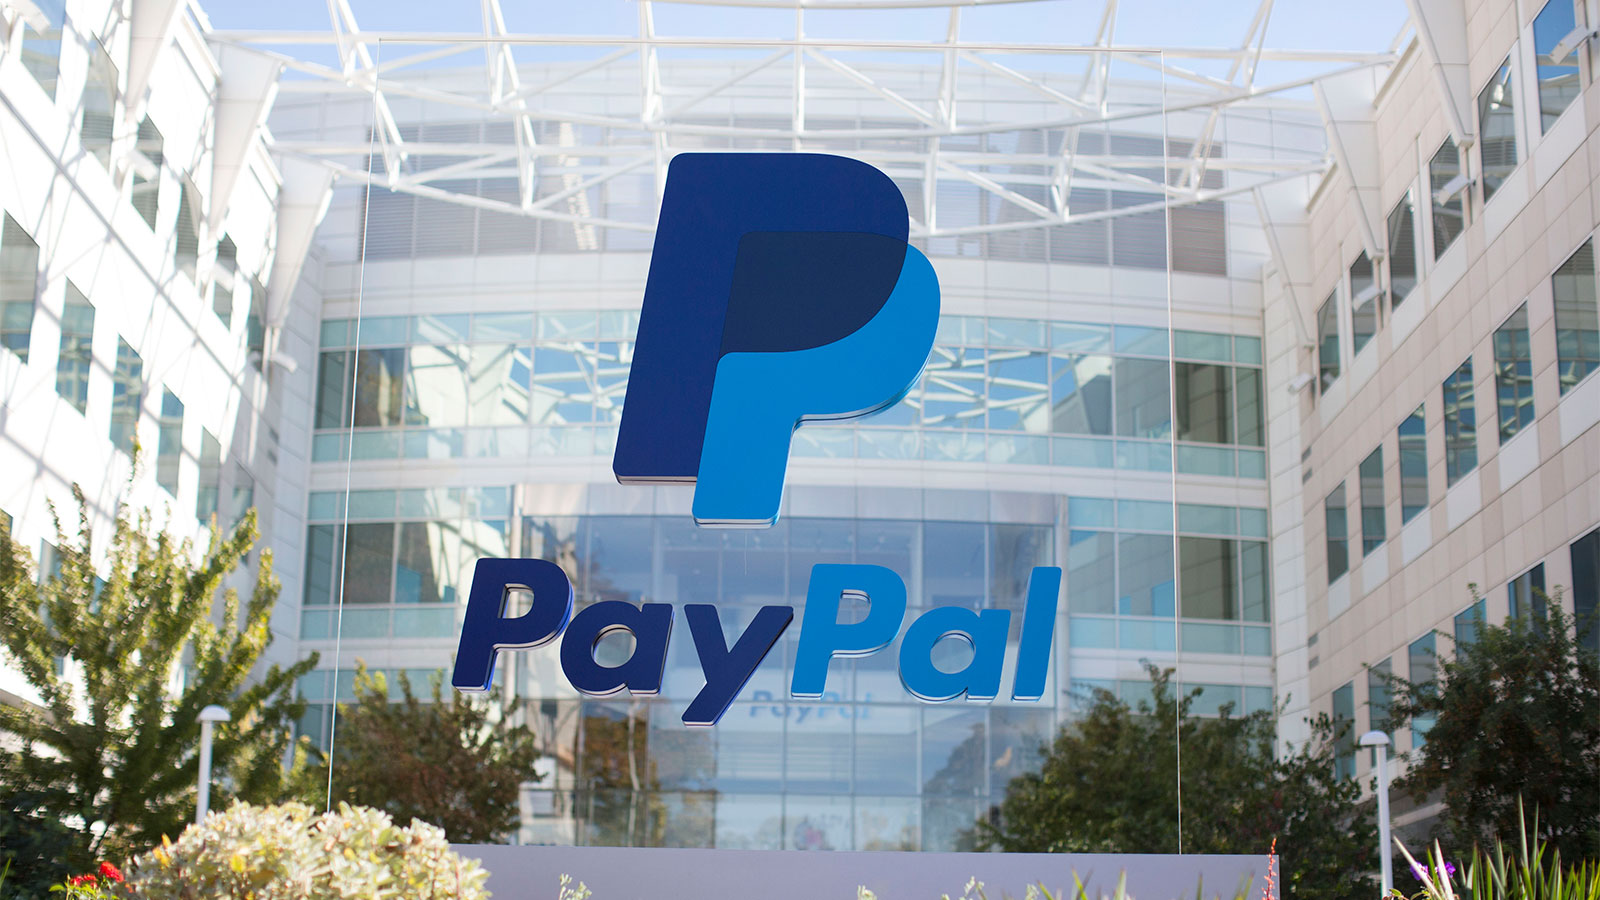 How to Sign Up for PayPal - Signing Up for PayPal